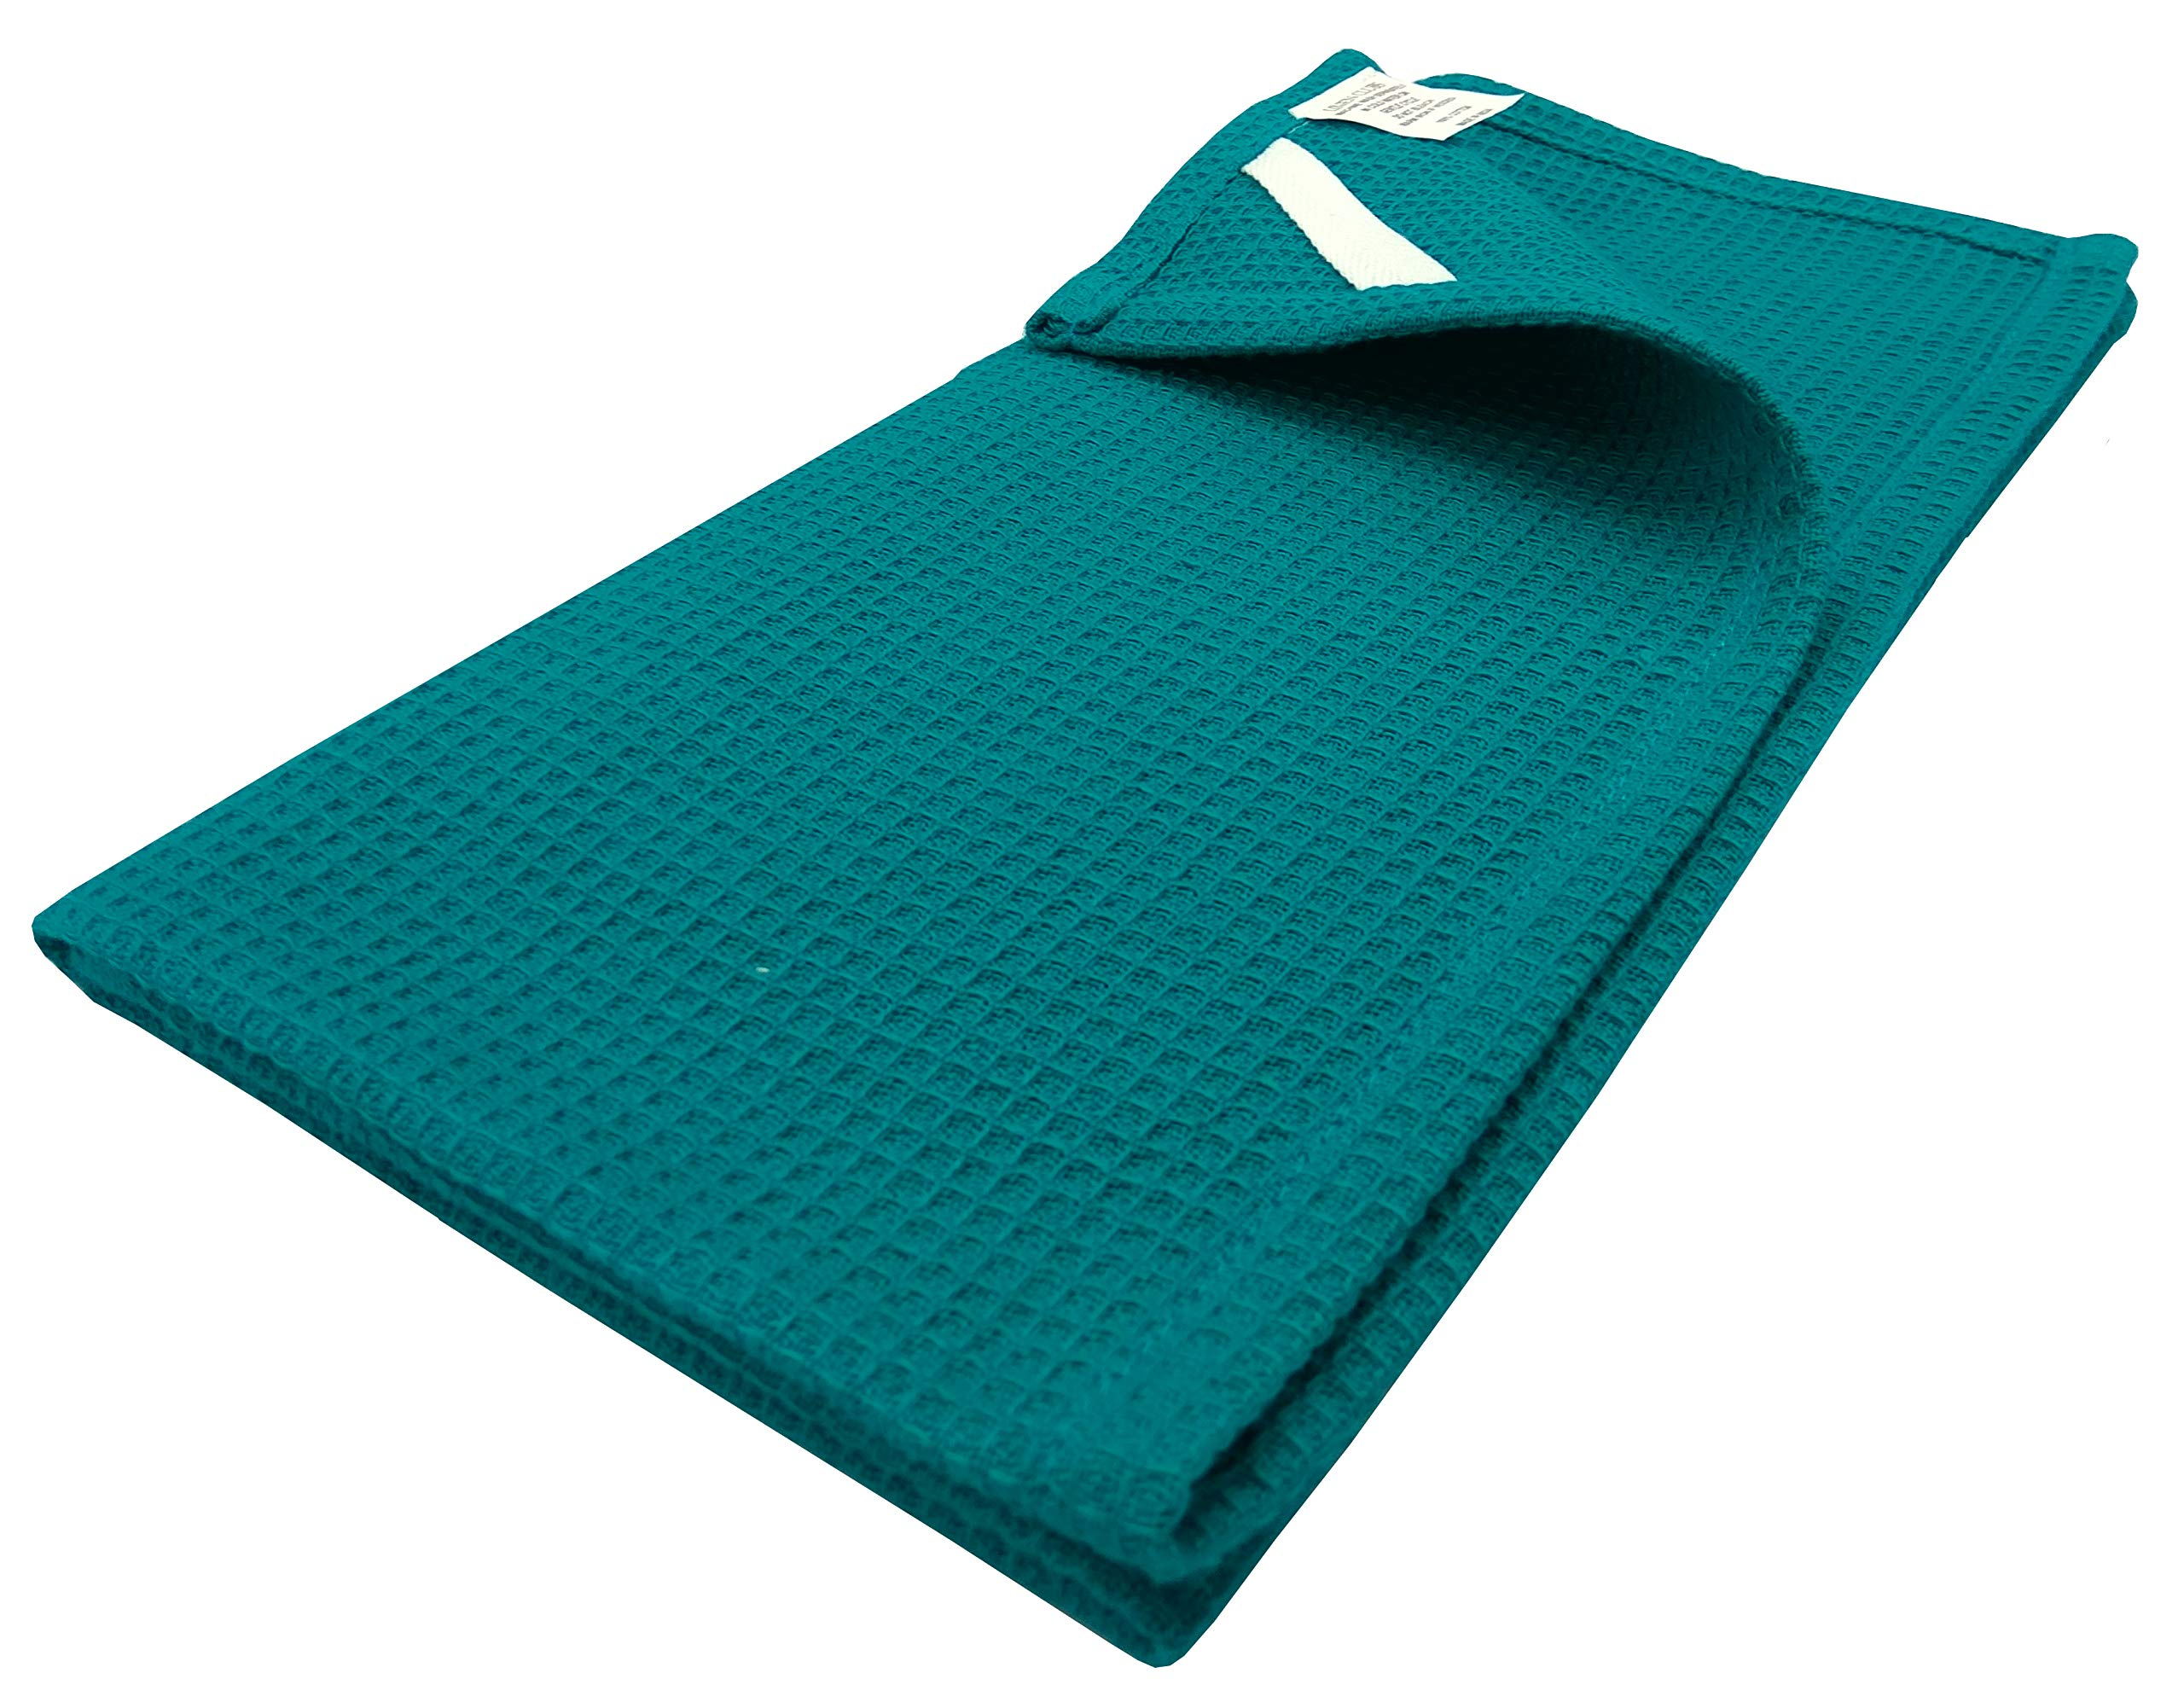 Linen Clubs 8 Pack waffle Kitchen Towels Teal Color 18x26 Inches- Pure Cotton, Absorbent Waffle Weave offered